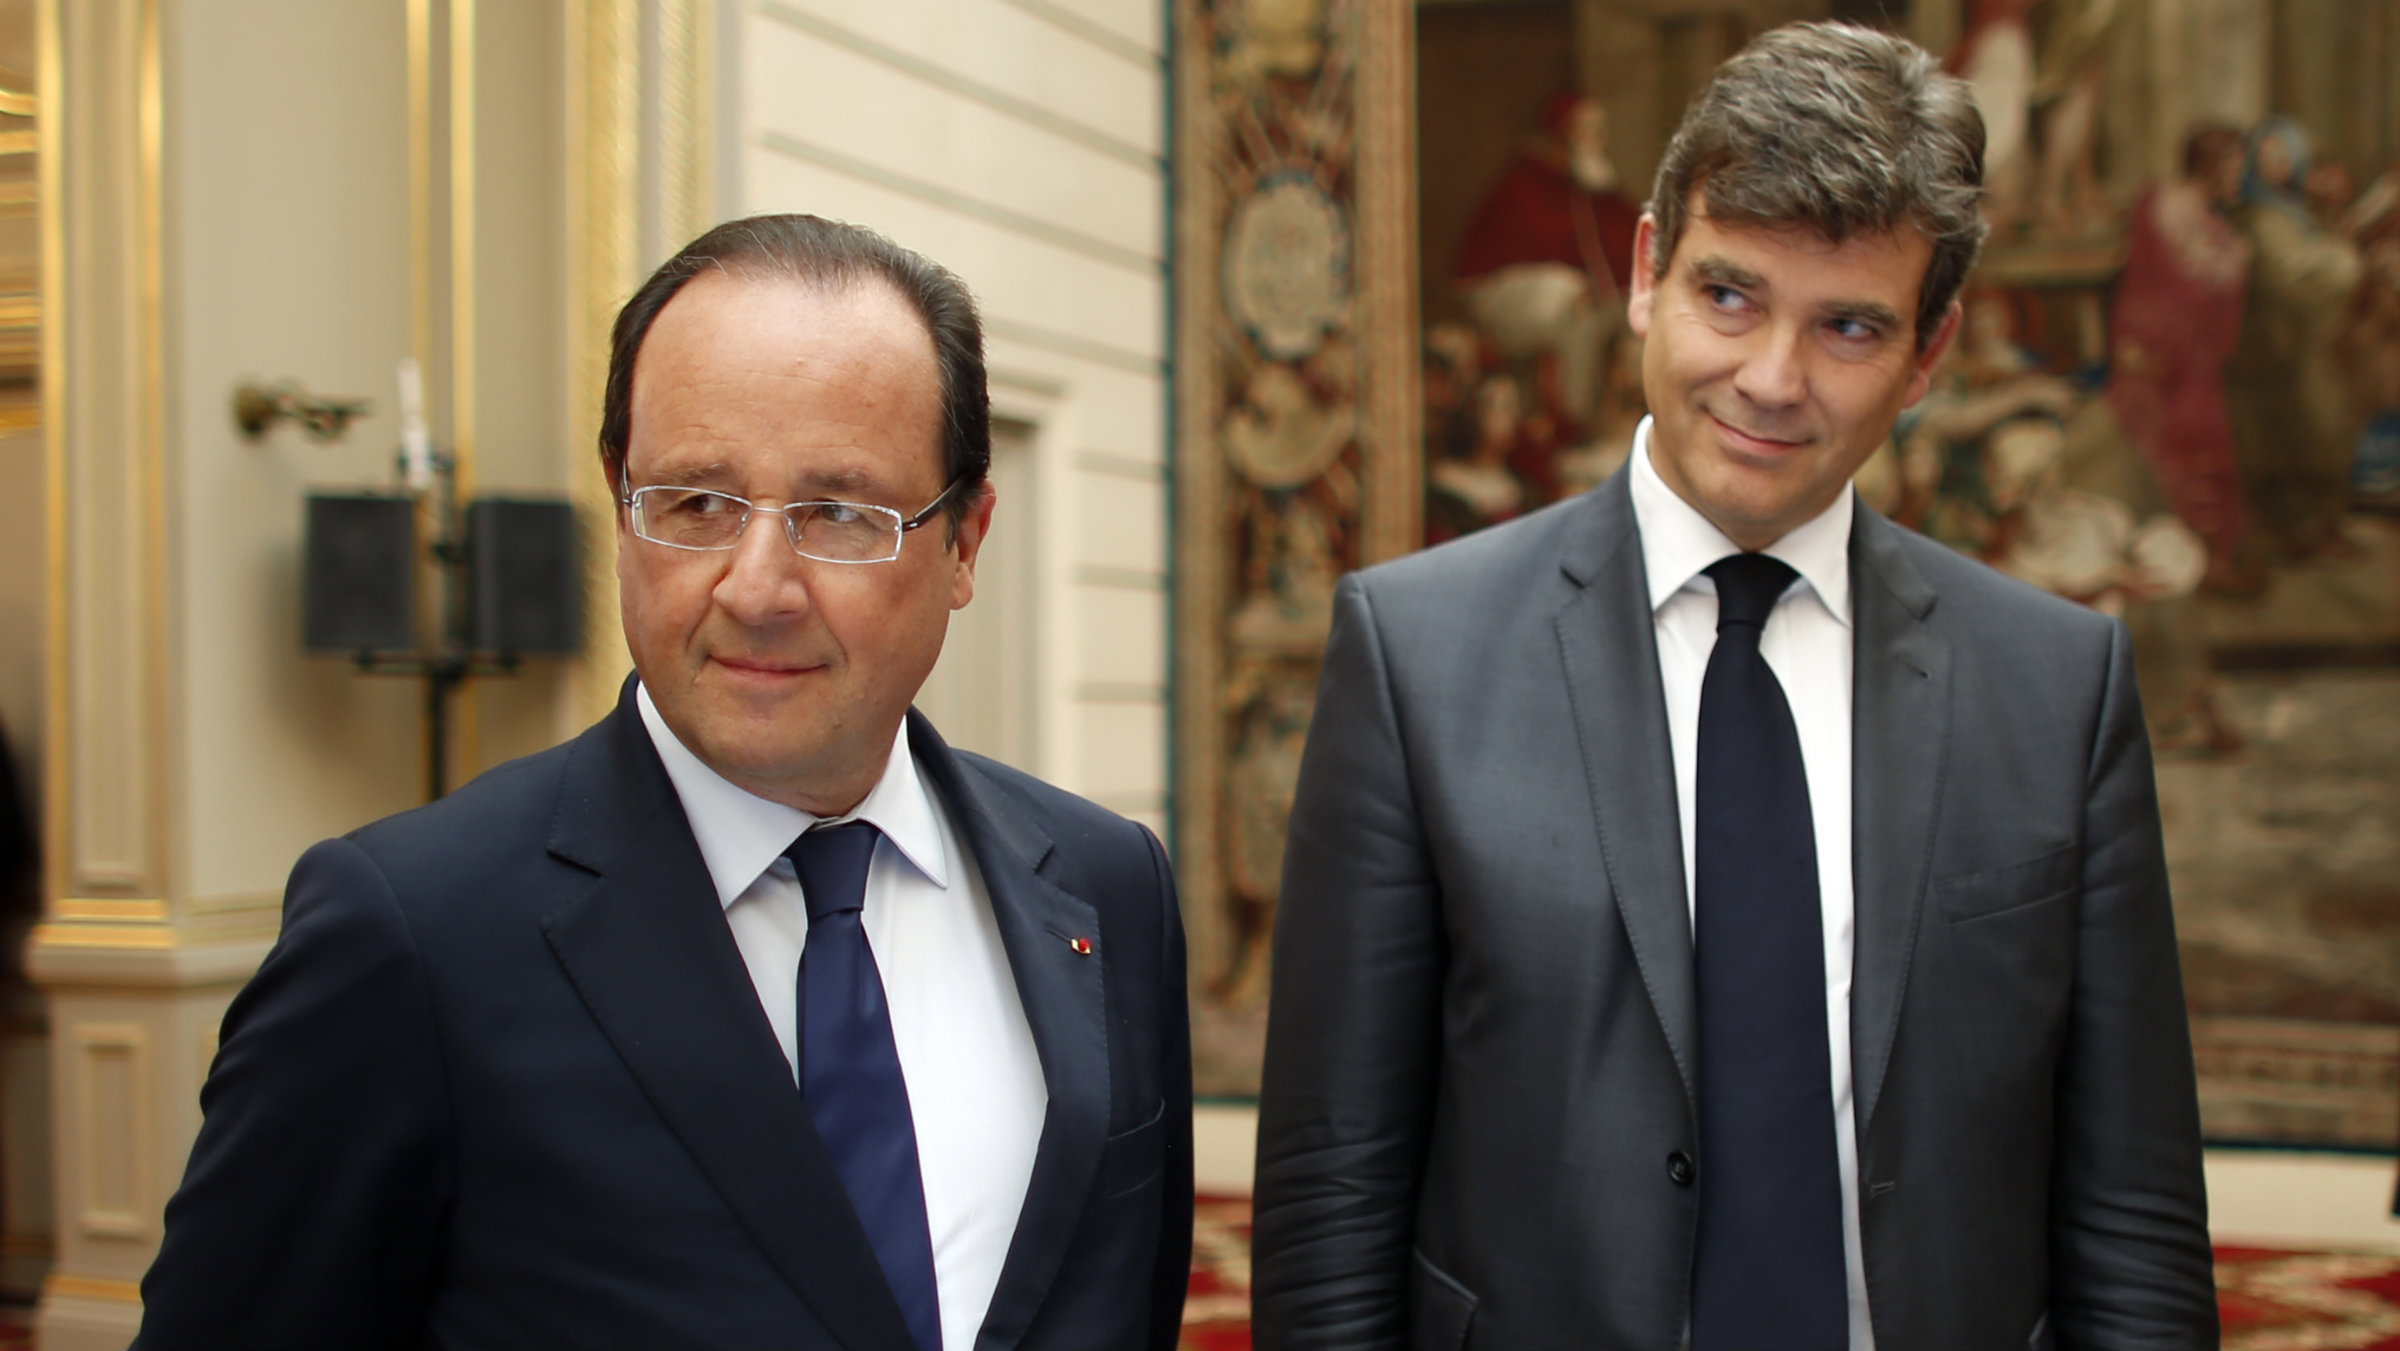 French President Francois Hollande and Minister for Industrial Recovery Arnaud Montebourg at the Elysee Palace in Paris.